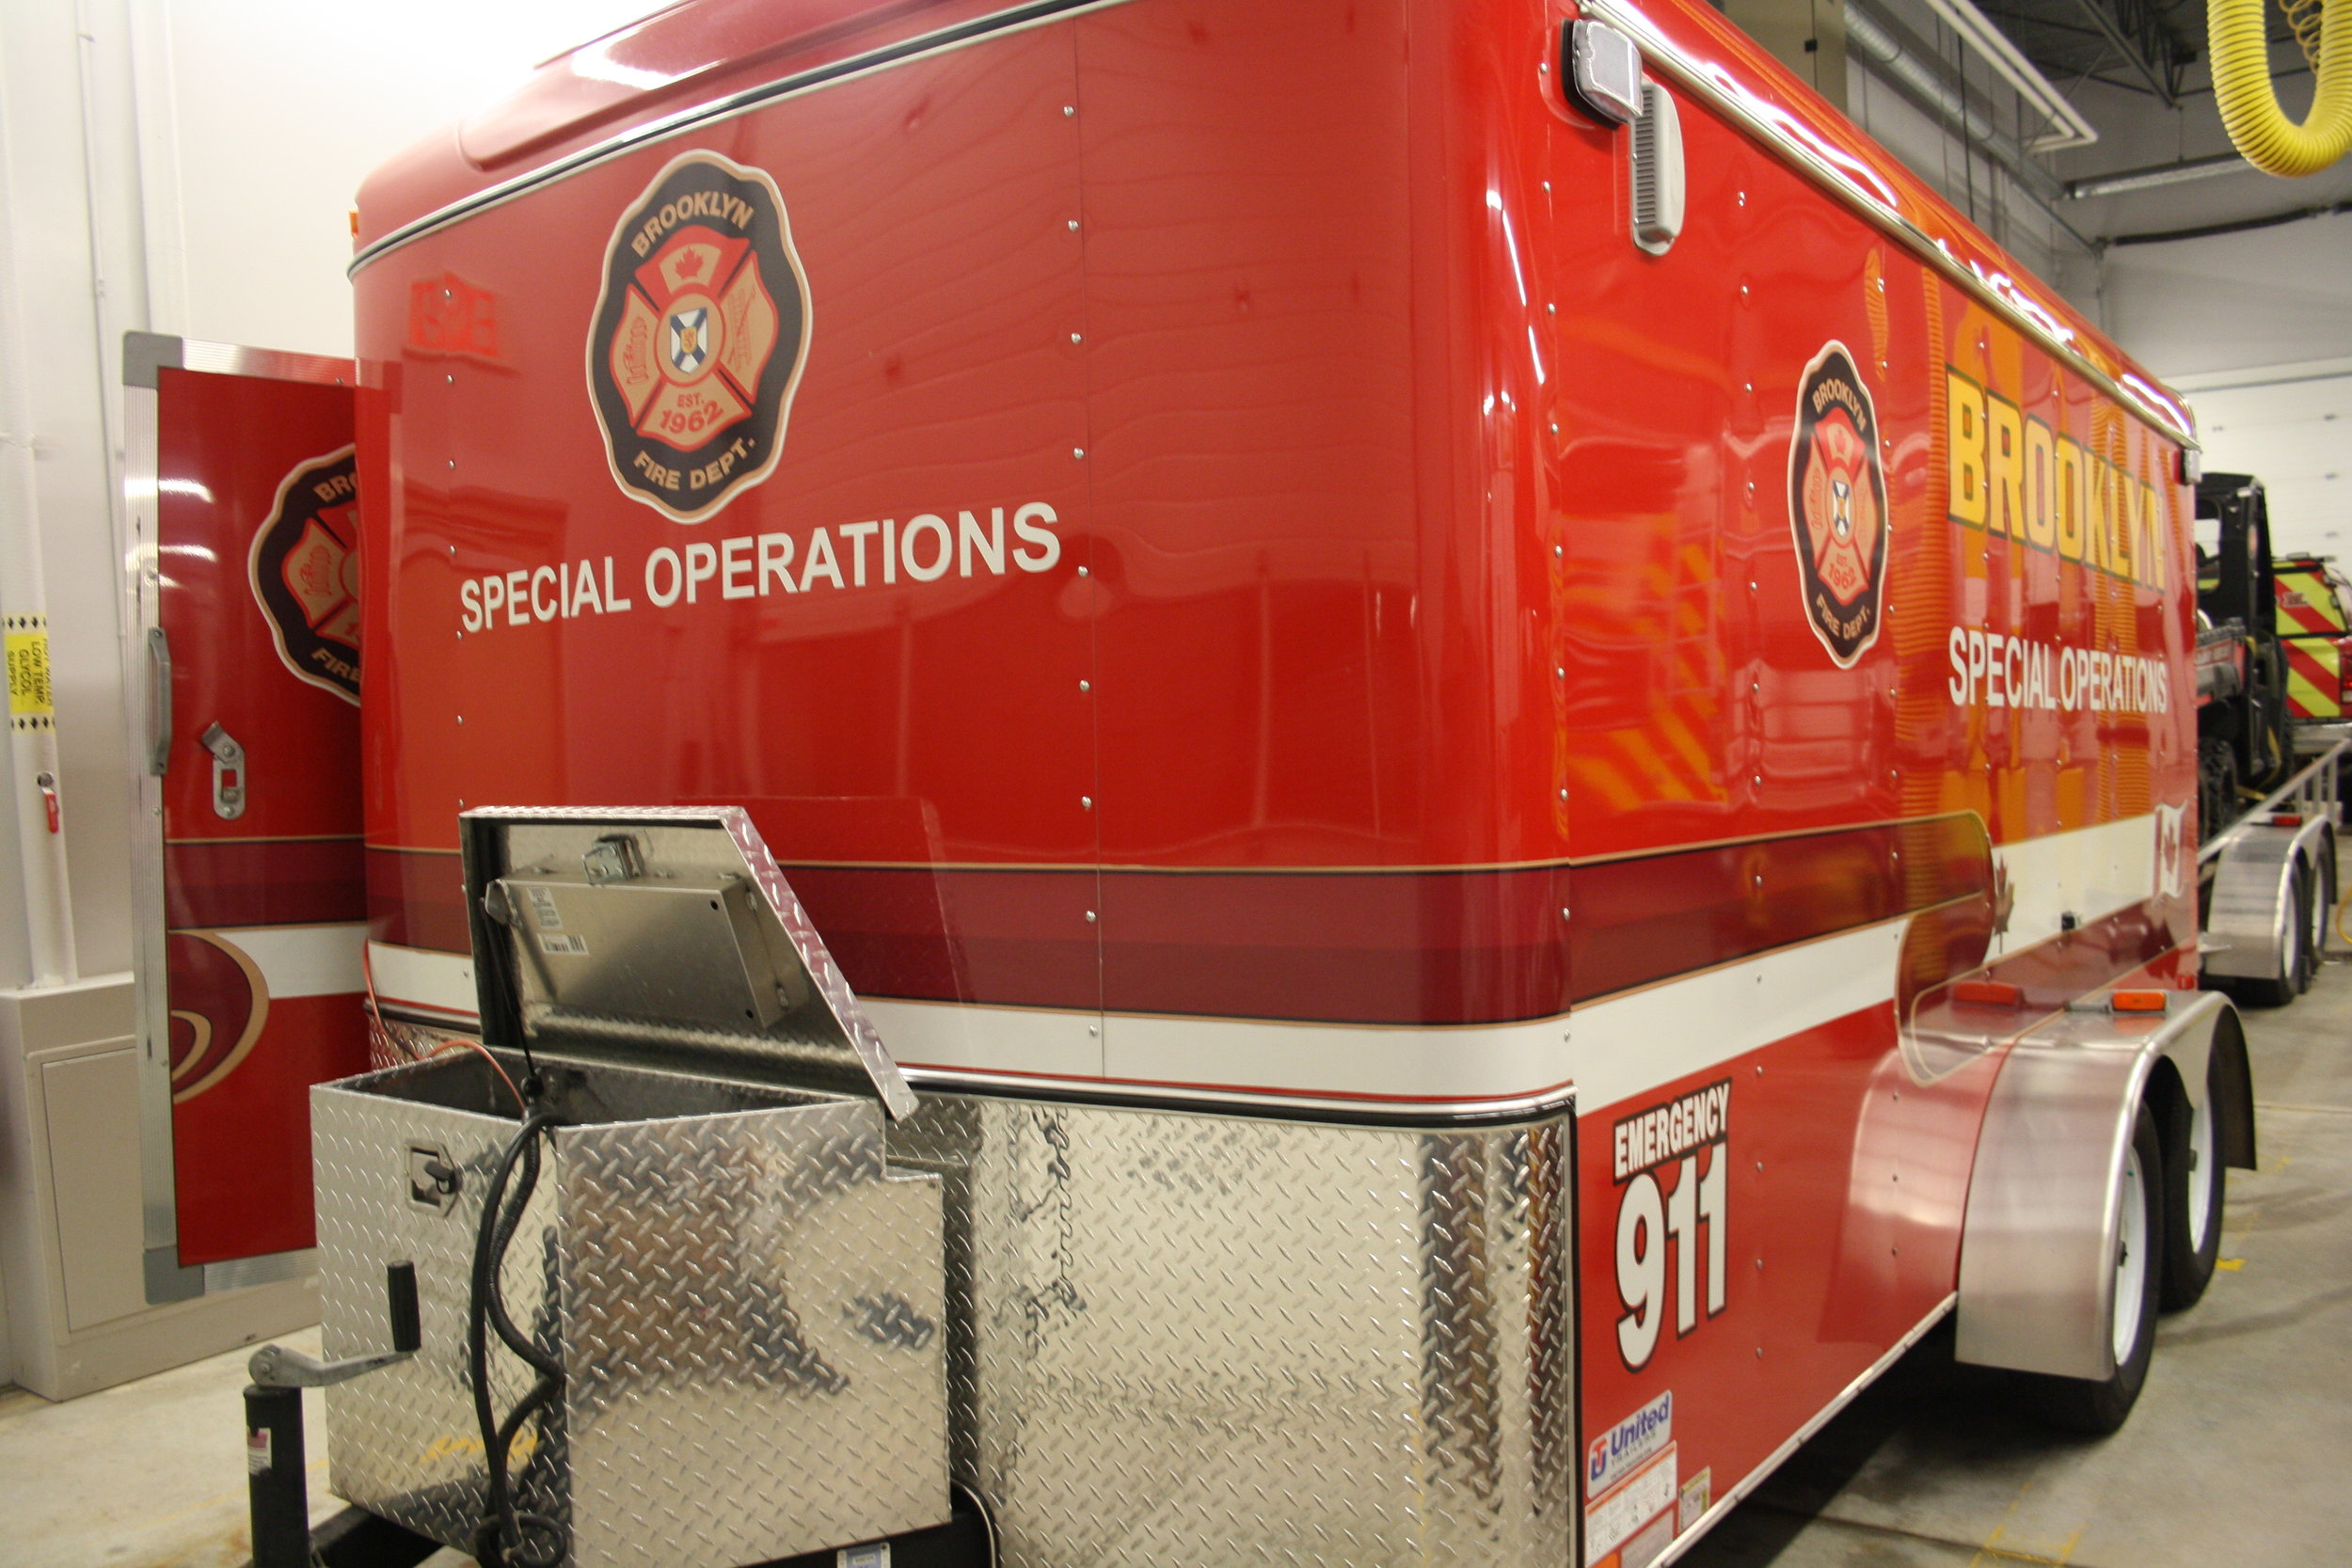 Special Operations Trailer carries Ice and Water rescue equipment.